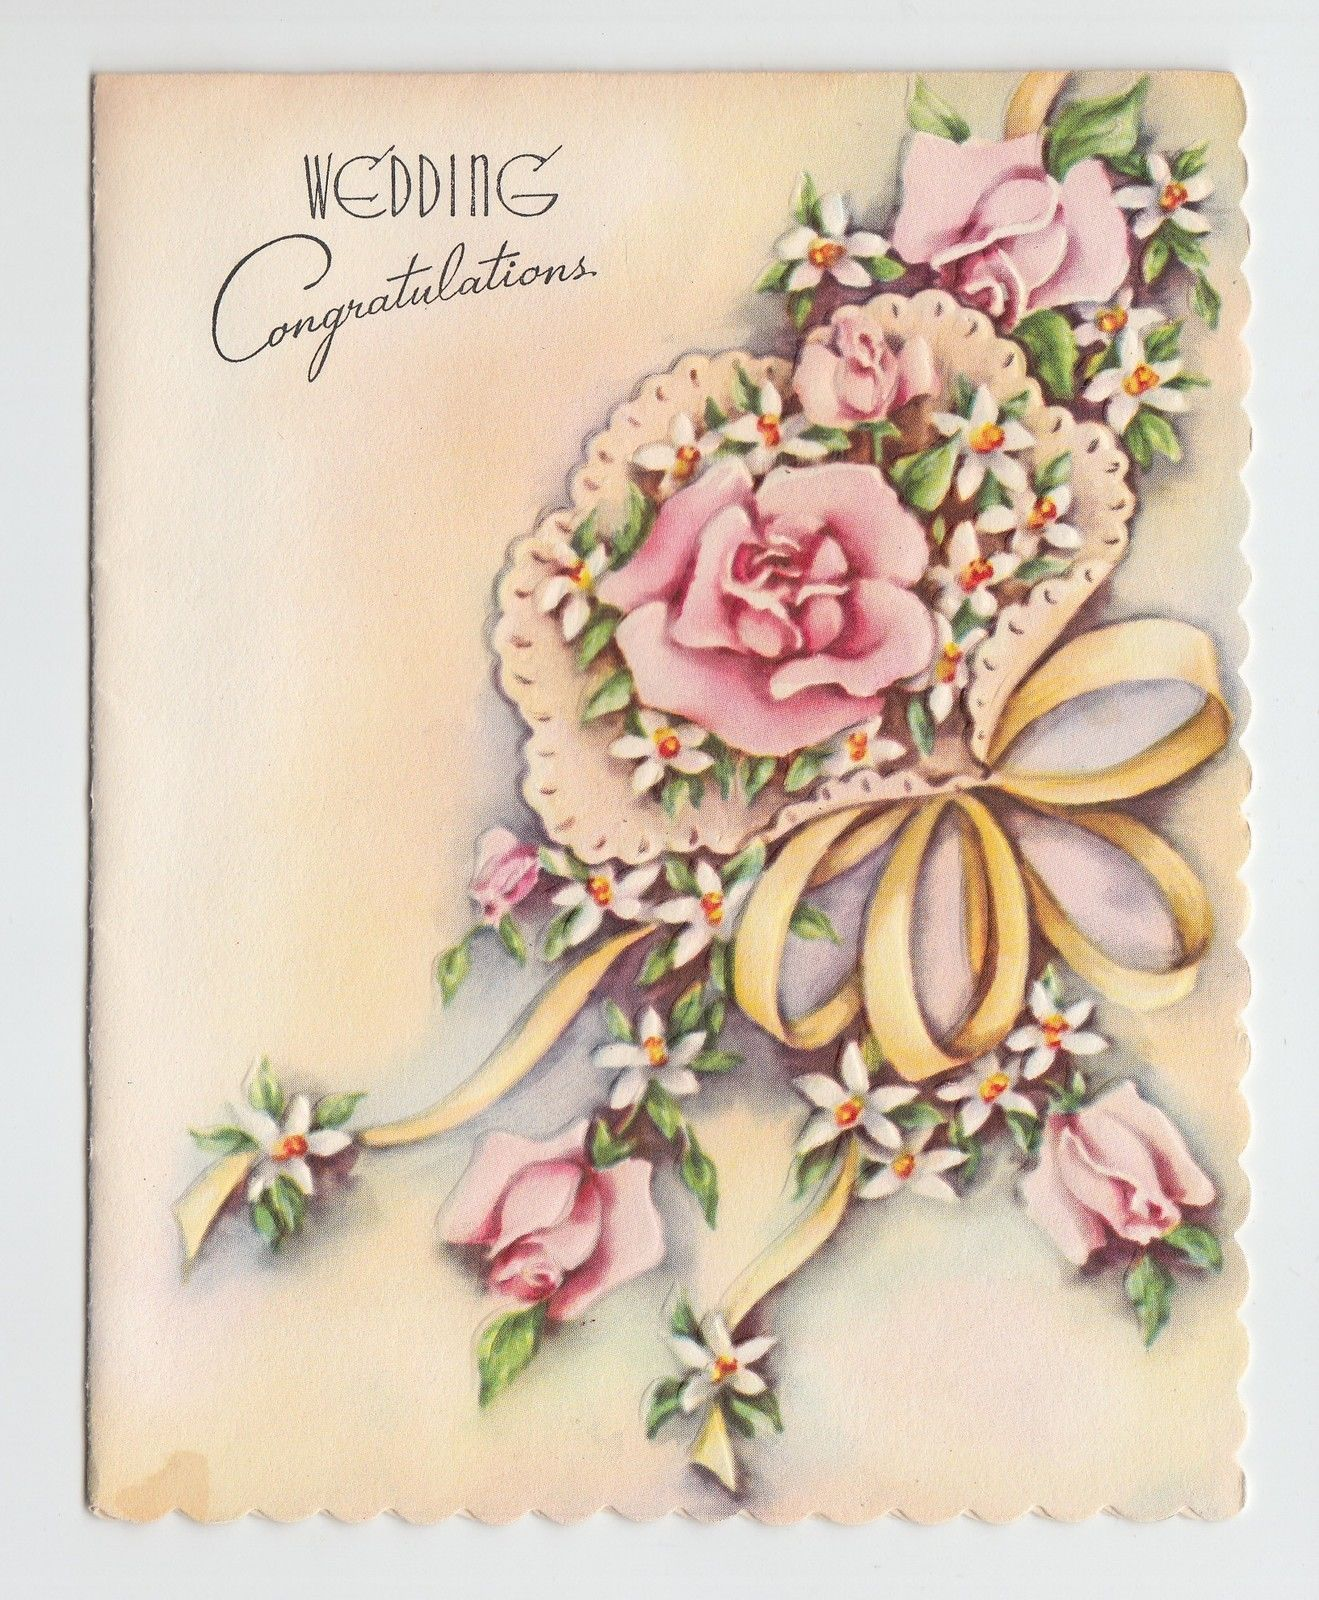 Vintage embossed bouquet bow wedding congratulations greeting card vintage embossed bouquet bow wedding congratulations greeting card ebay kristyandbryce Image collections